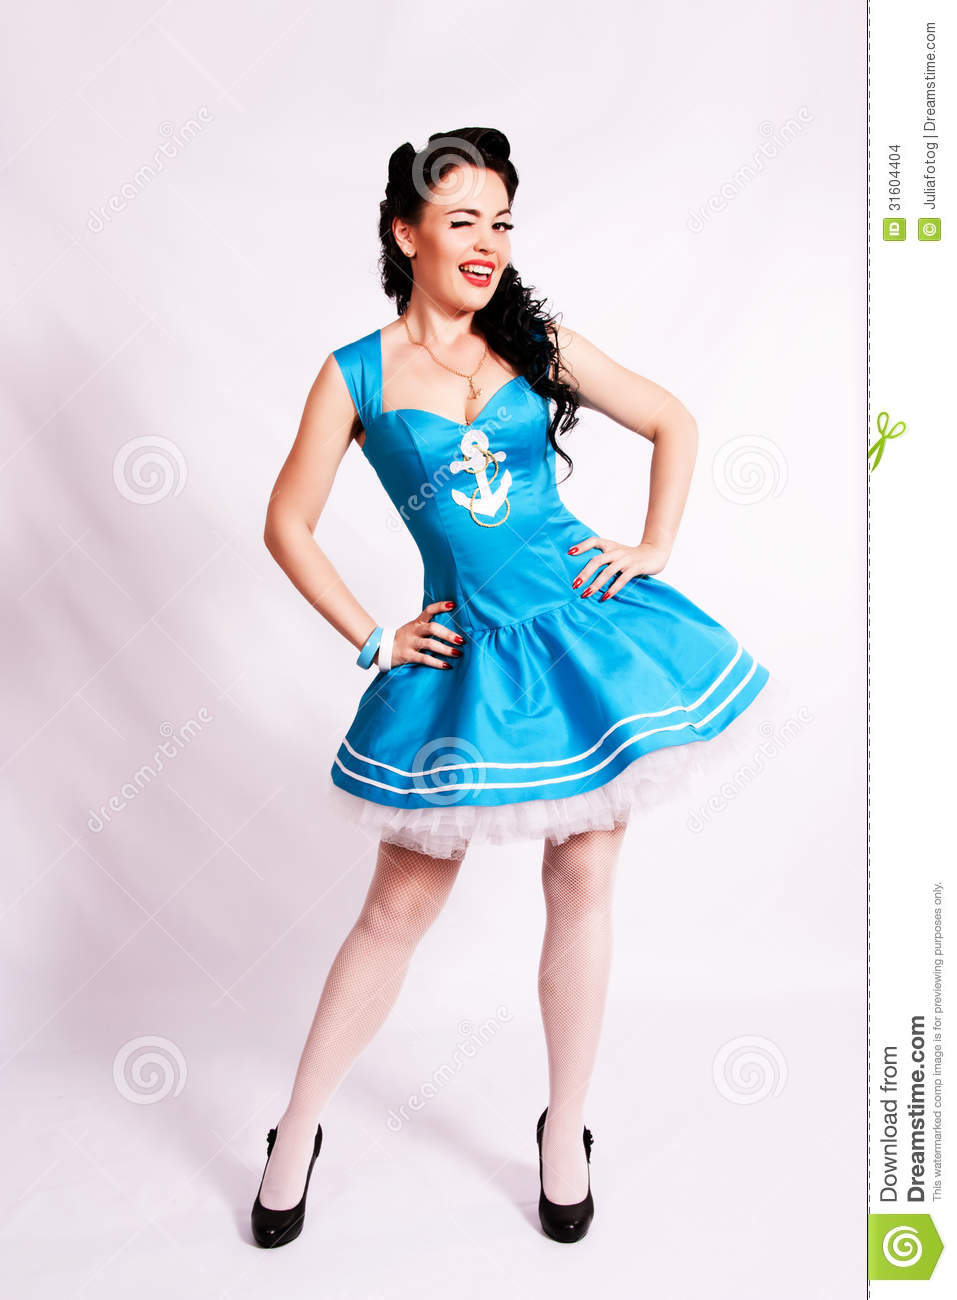 sailor pin up girl with bright make up stock photo image 31604404. Black Bedroom Furniture Sets. Home Design Ideas